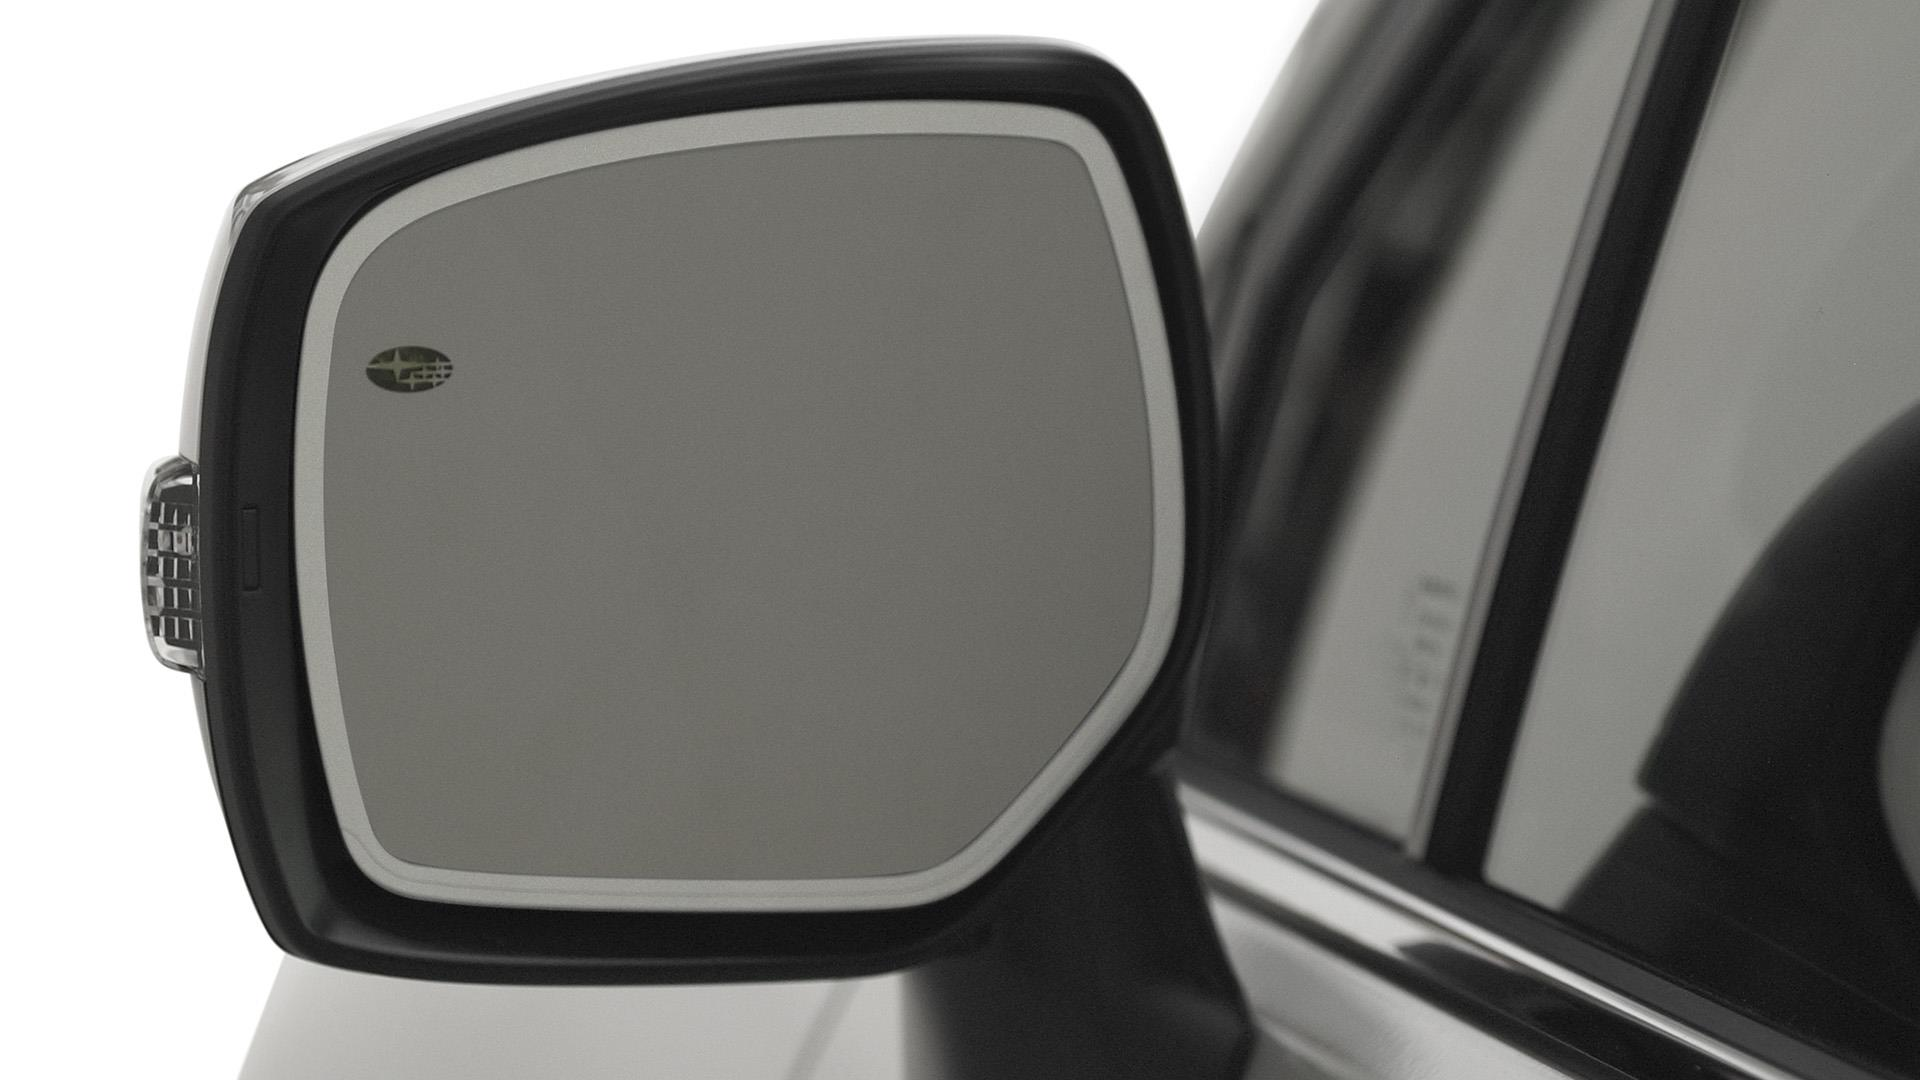 J201ssg601 Auto Dimming Exterior Mirror With Approach